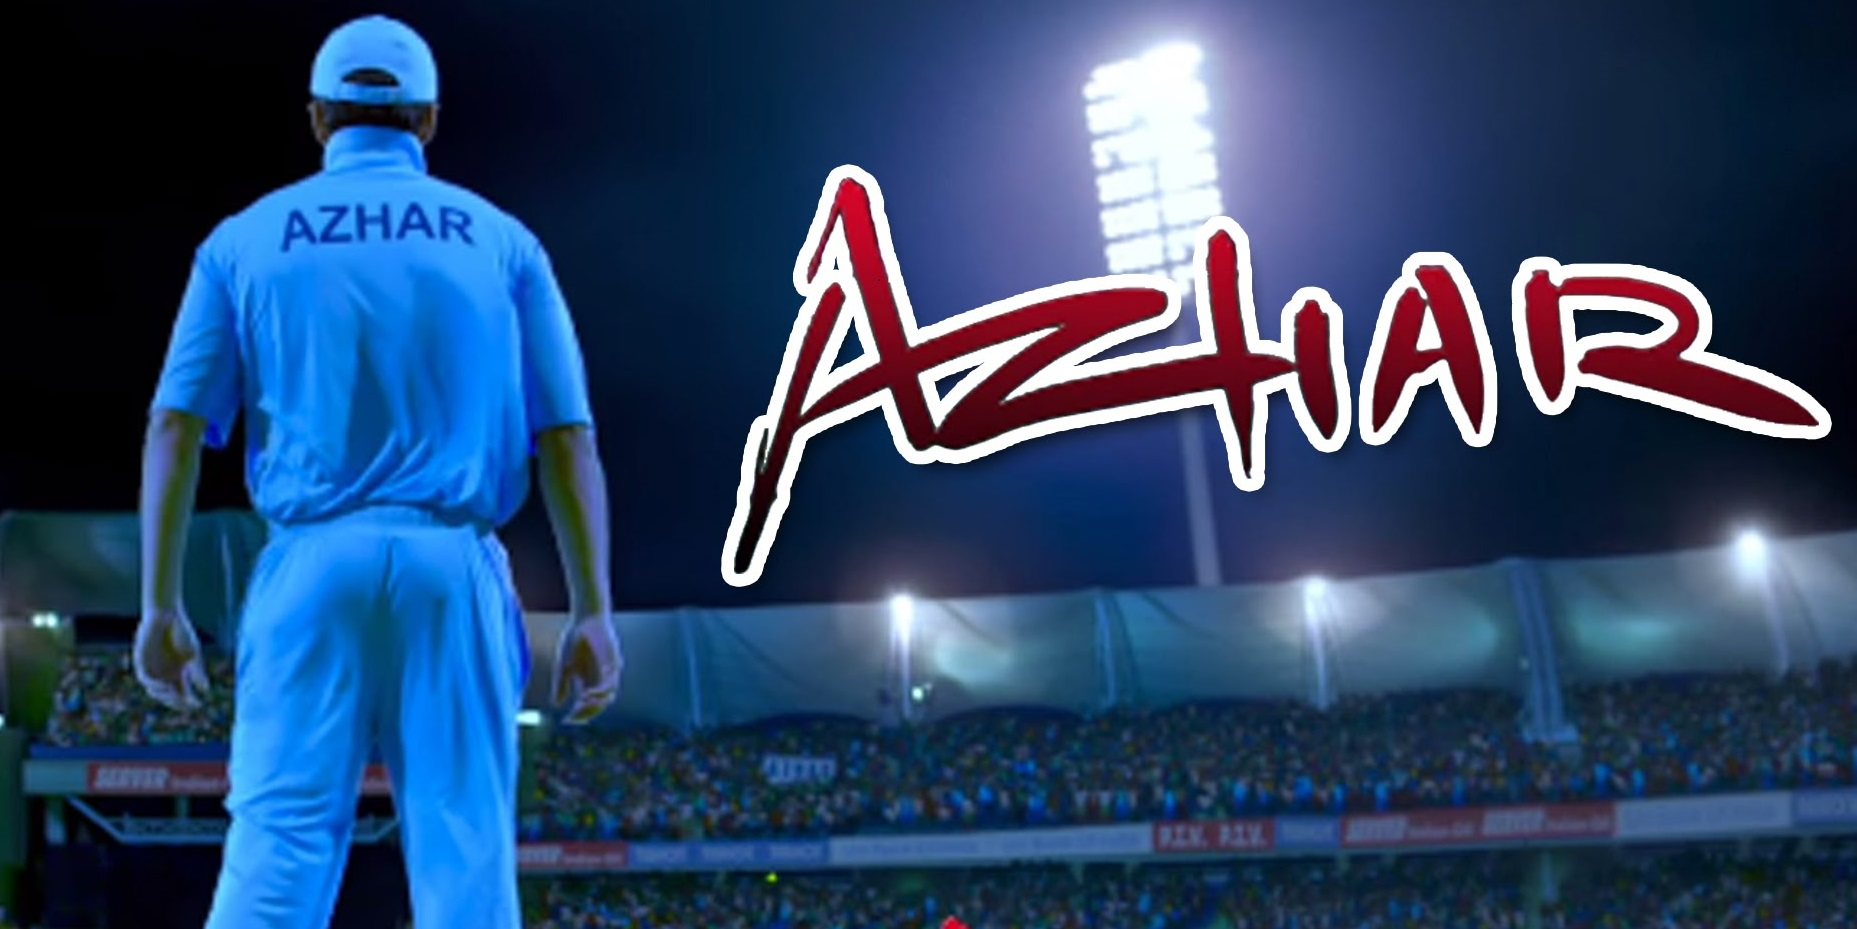 Azhar Box Office Collection